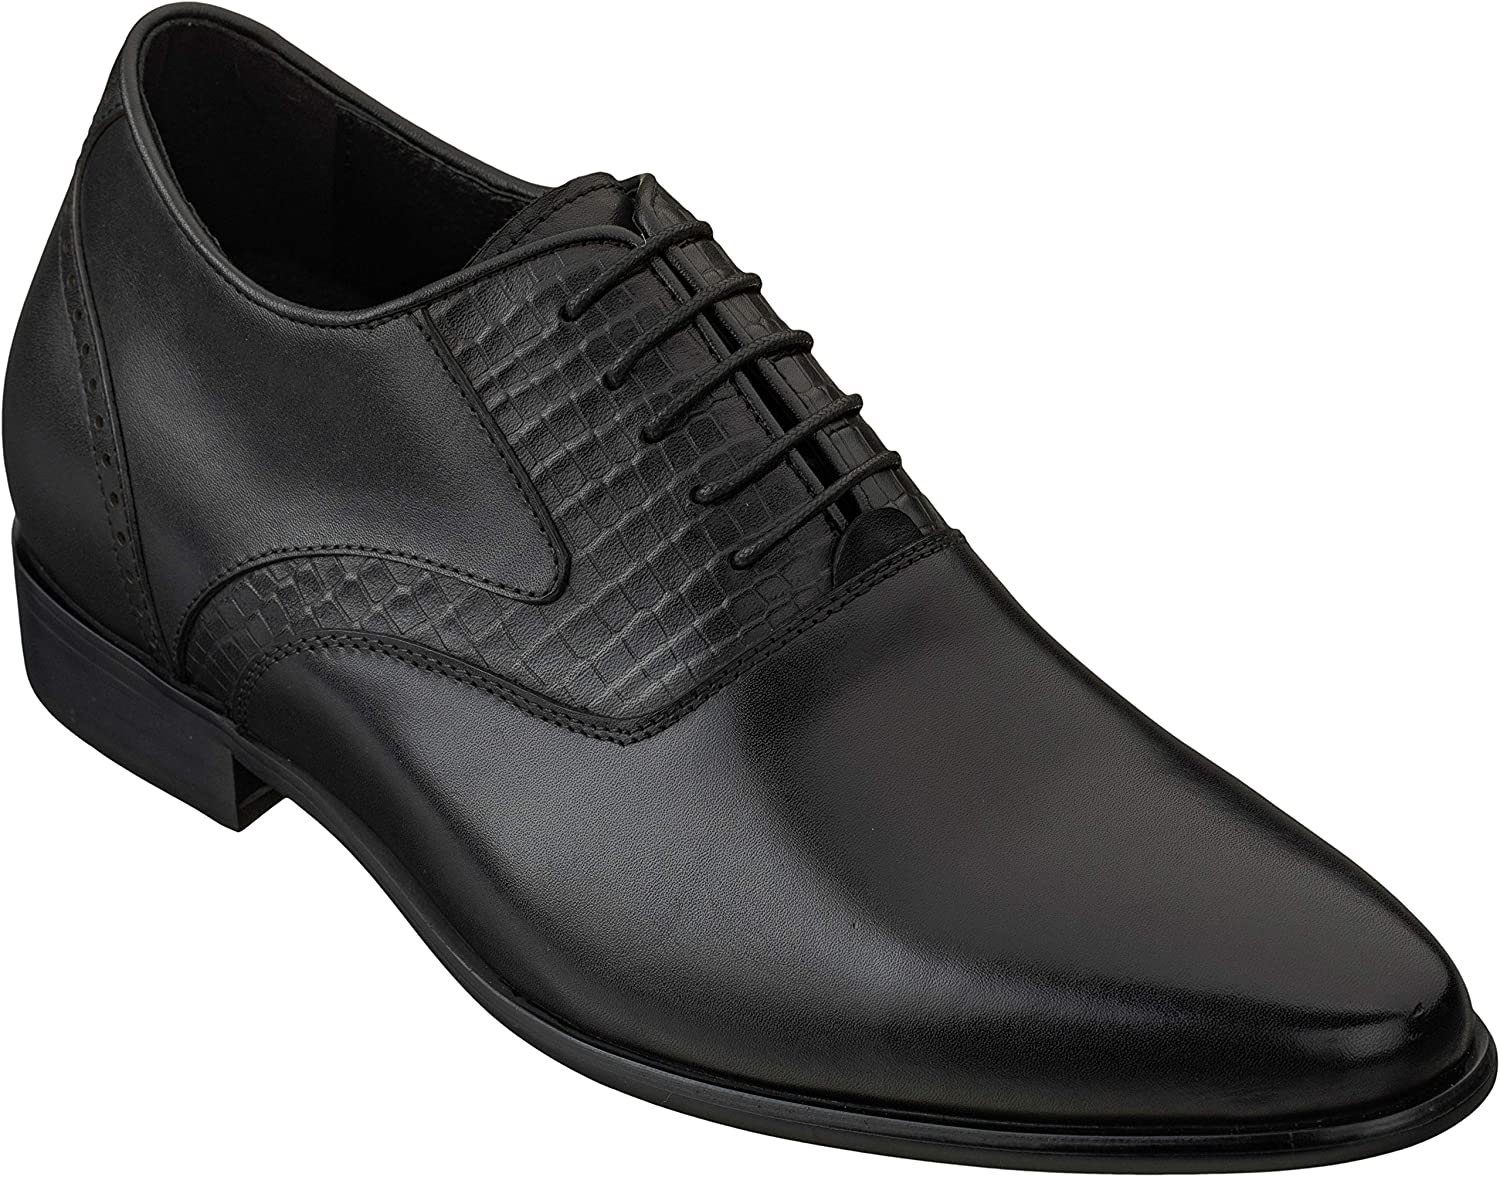 CALTO Men's Invisible Height Increasing Elevator Shoes - Black Premium Leather Lace-up Formal Oxfords with Faux Leather Sole - 2.8 Inches Taller - S1930